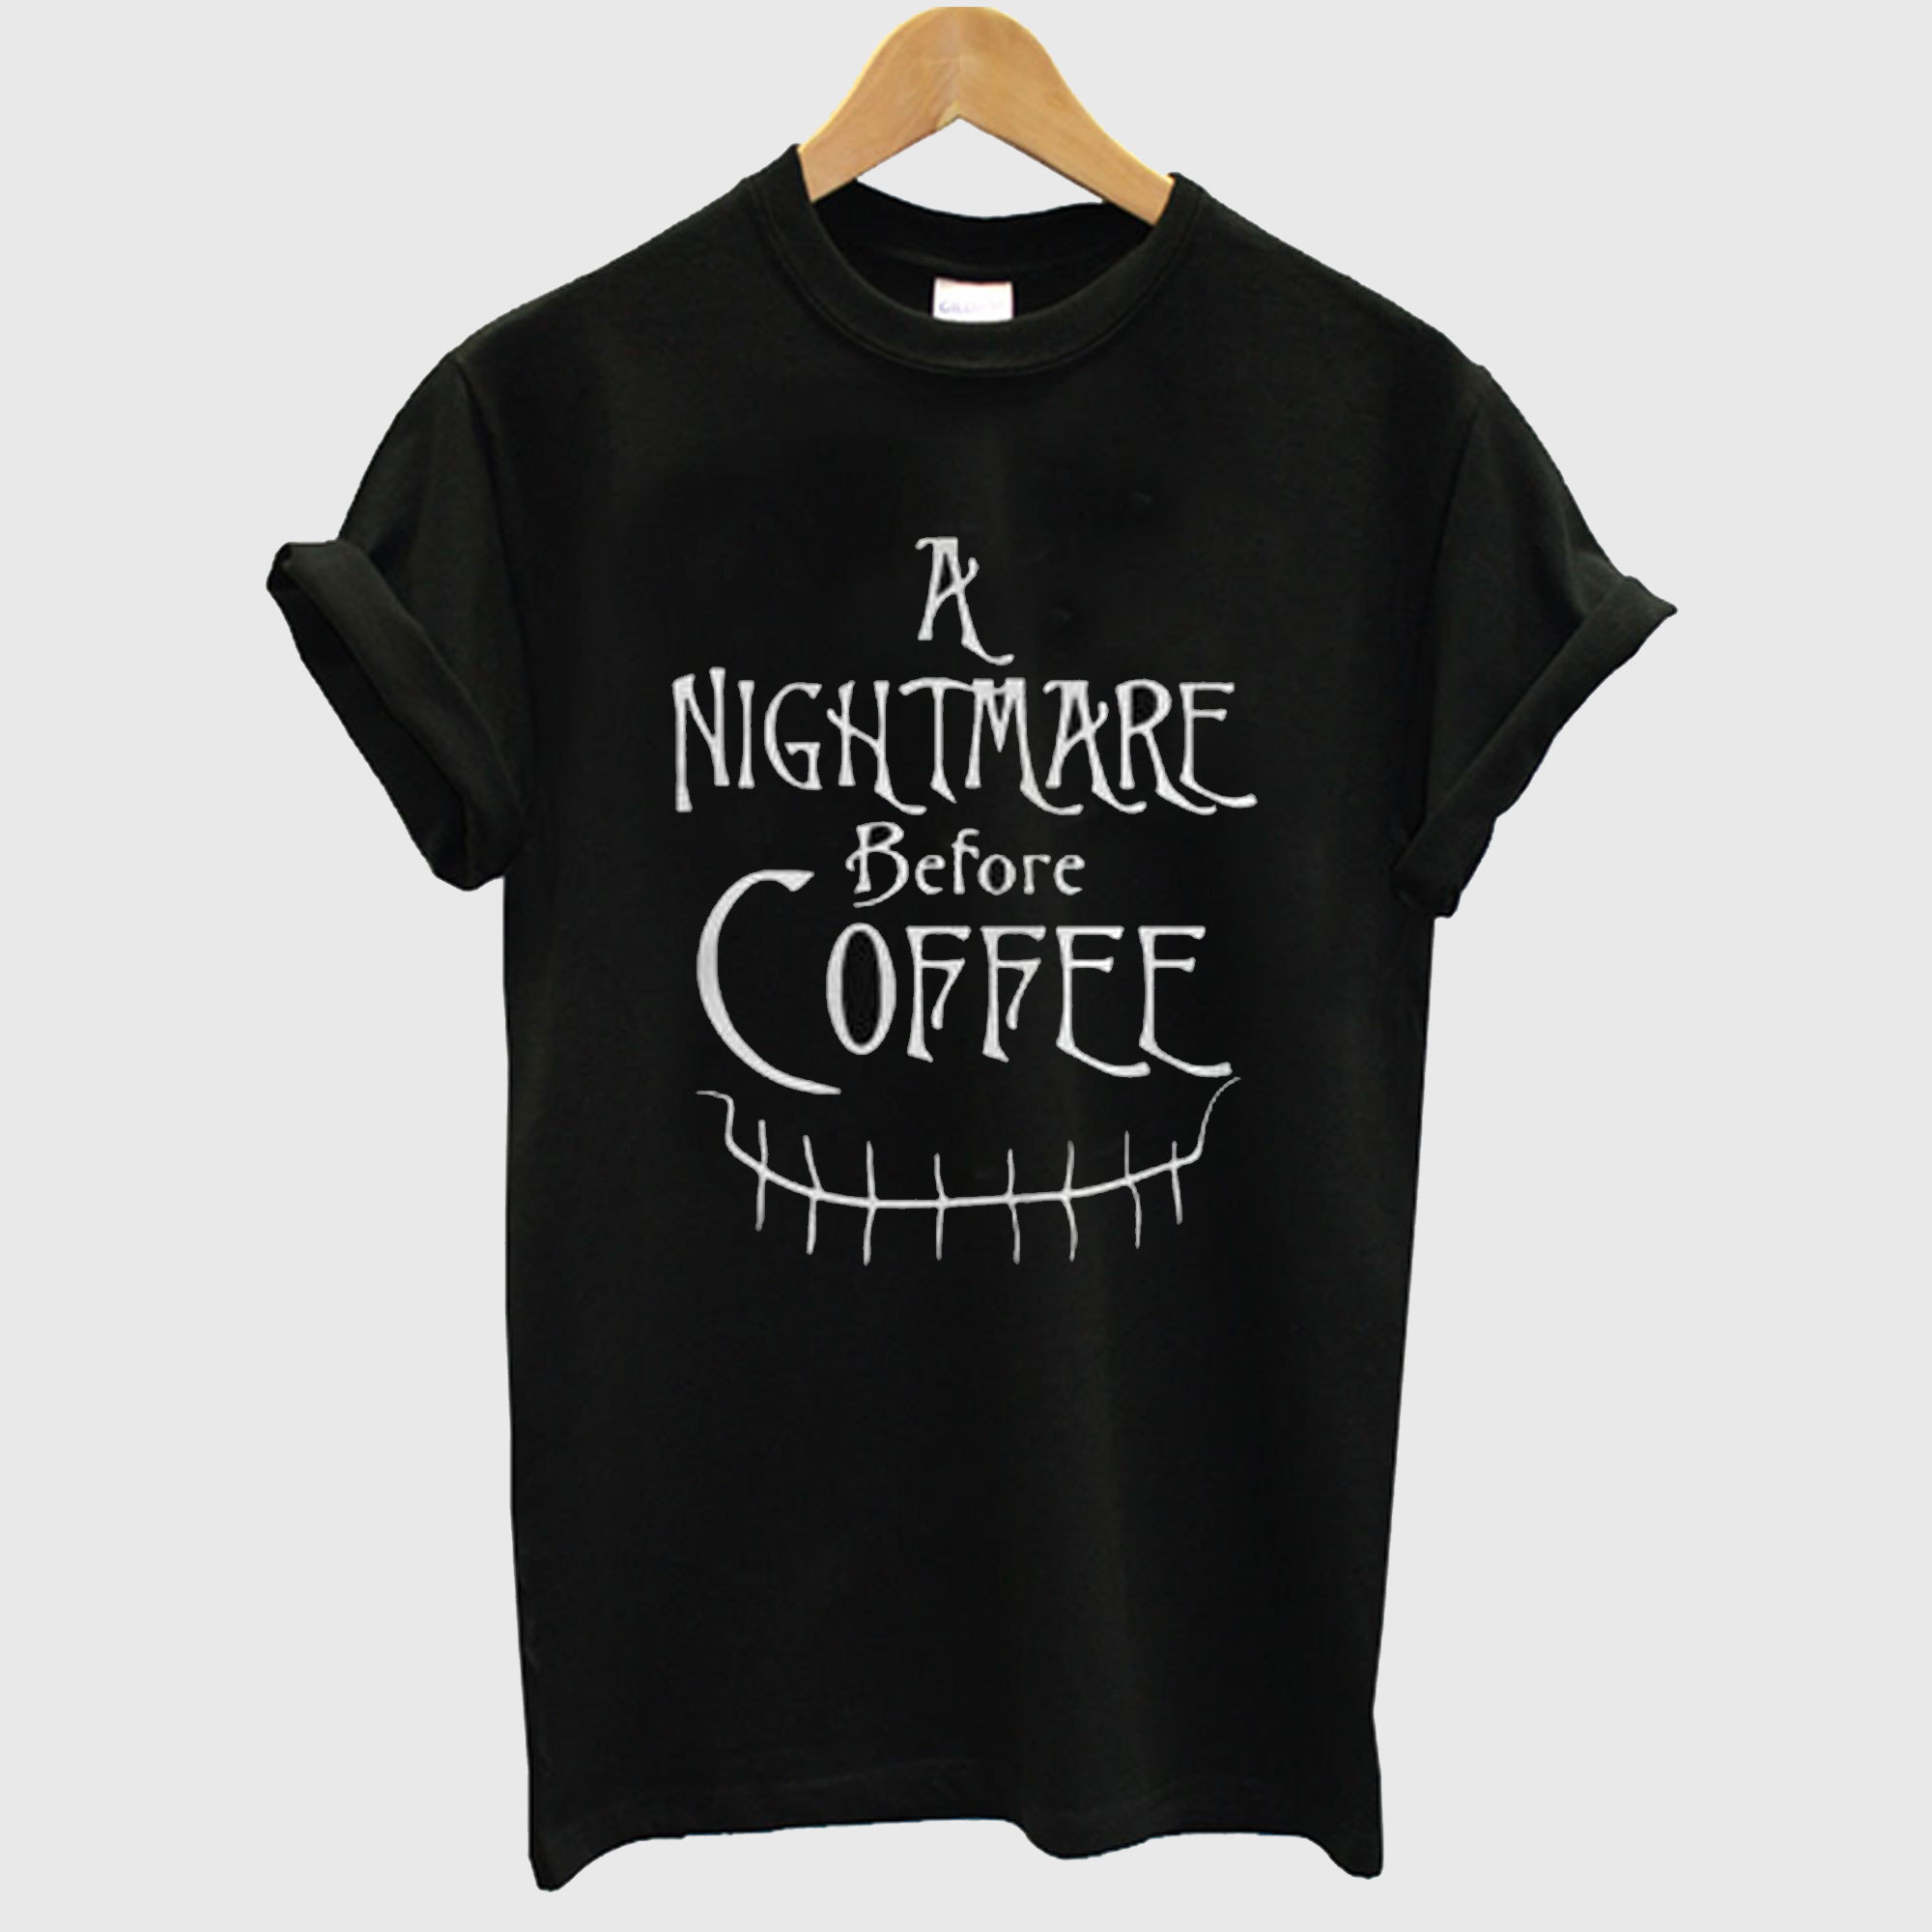 A Nightmare Before Coffee Halloween T-Shirt